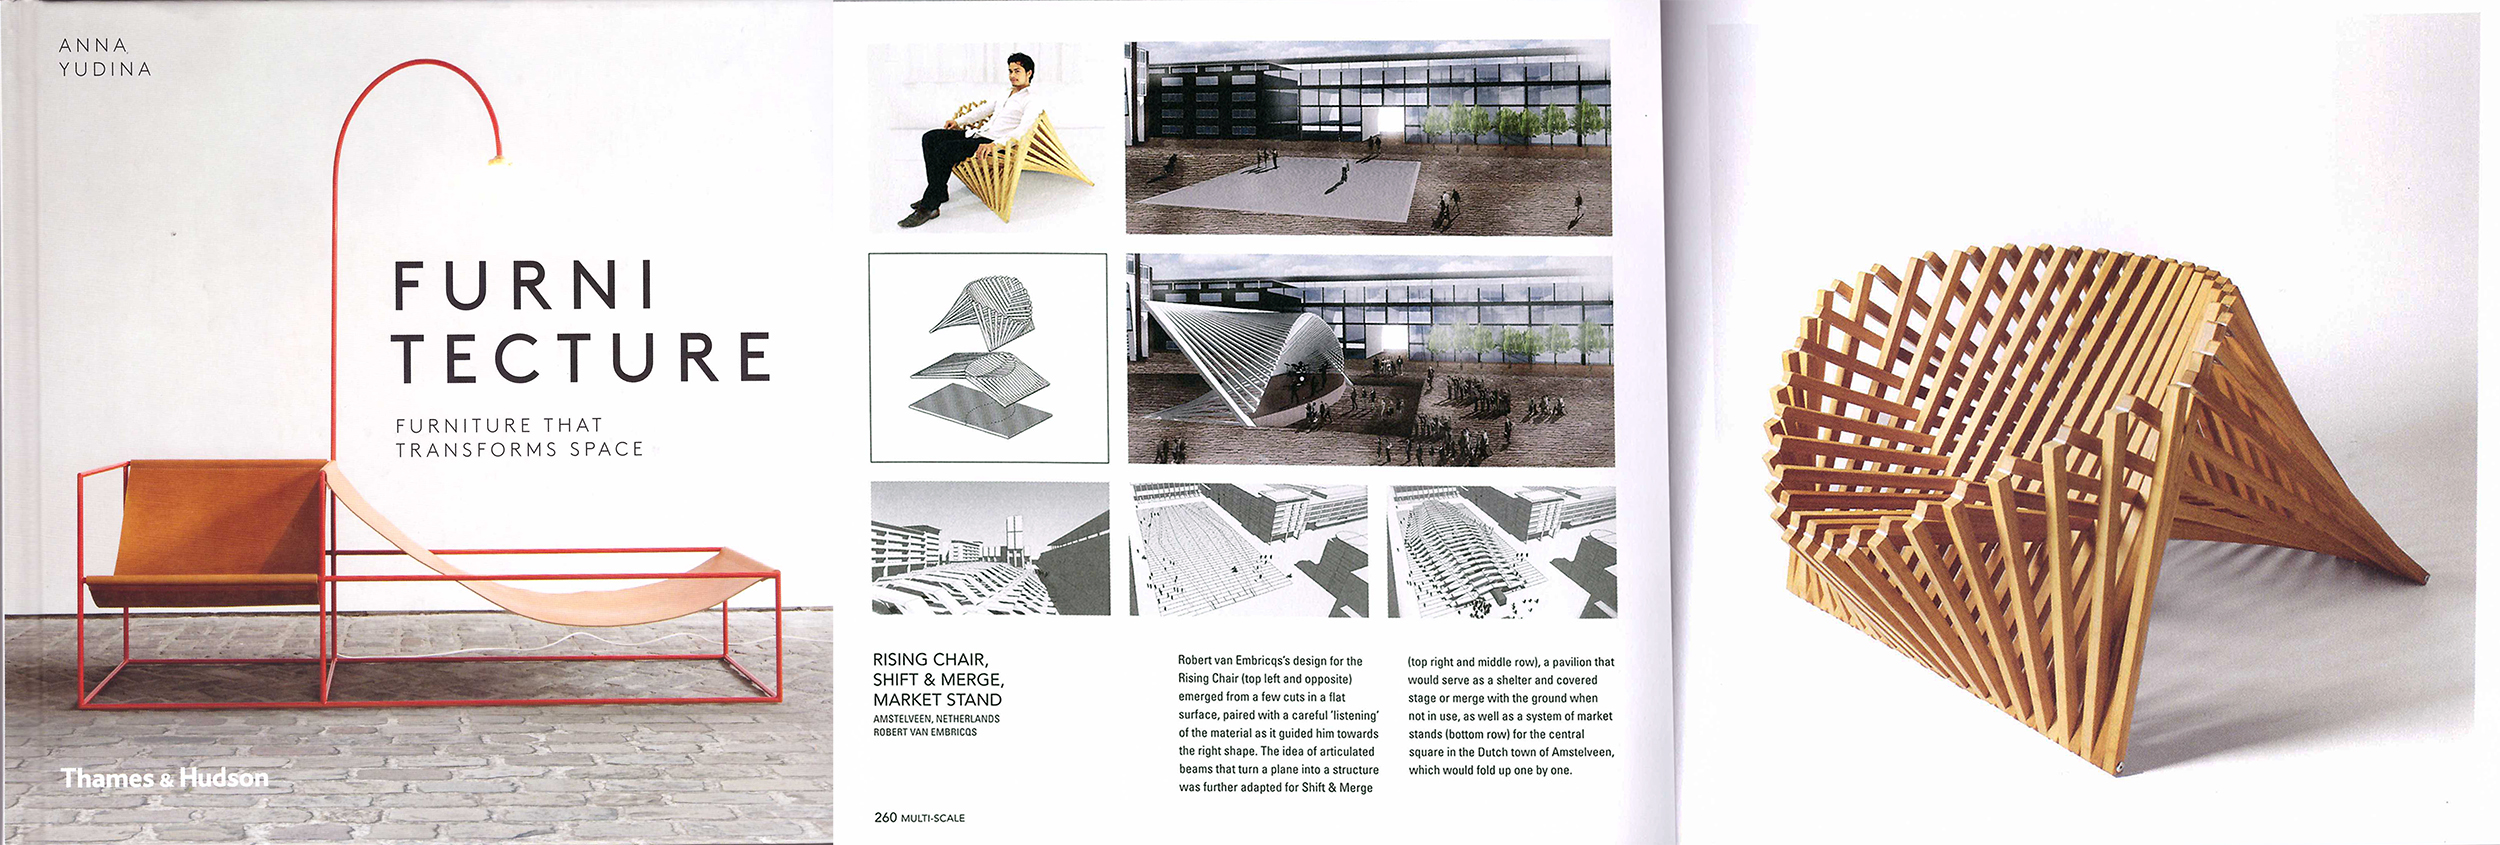 Furnitecture book